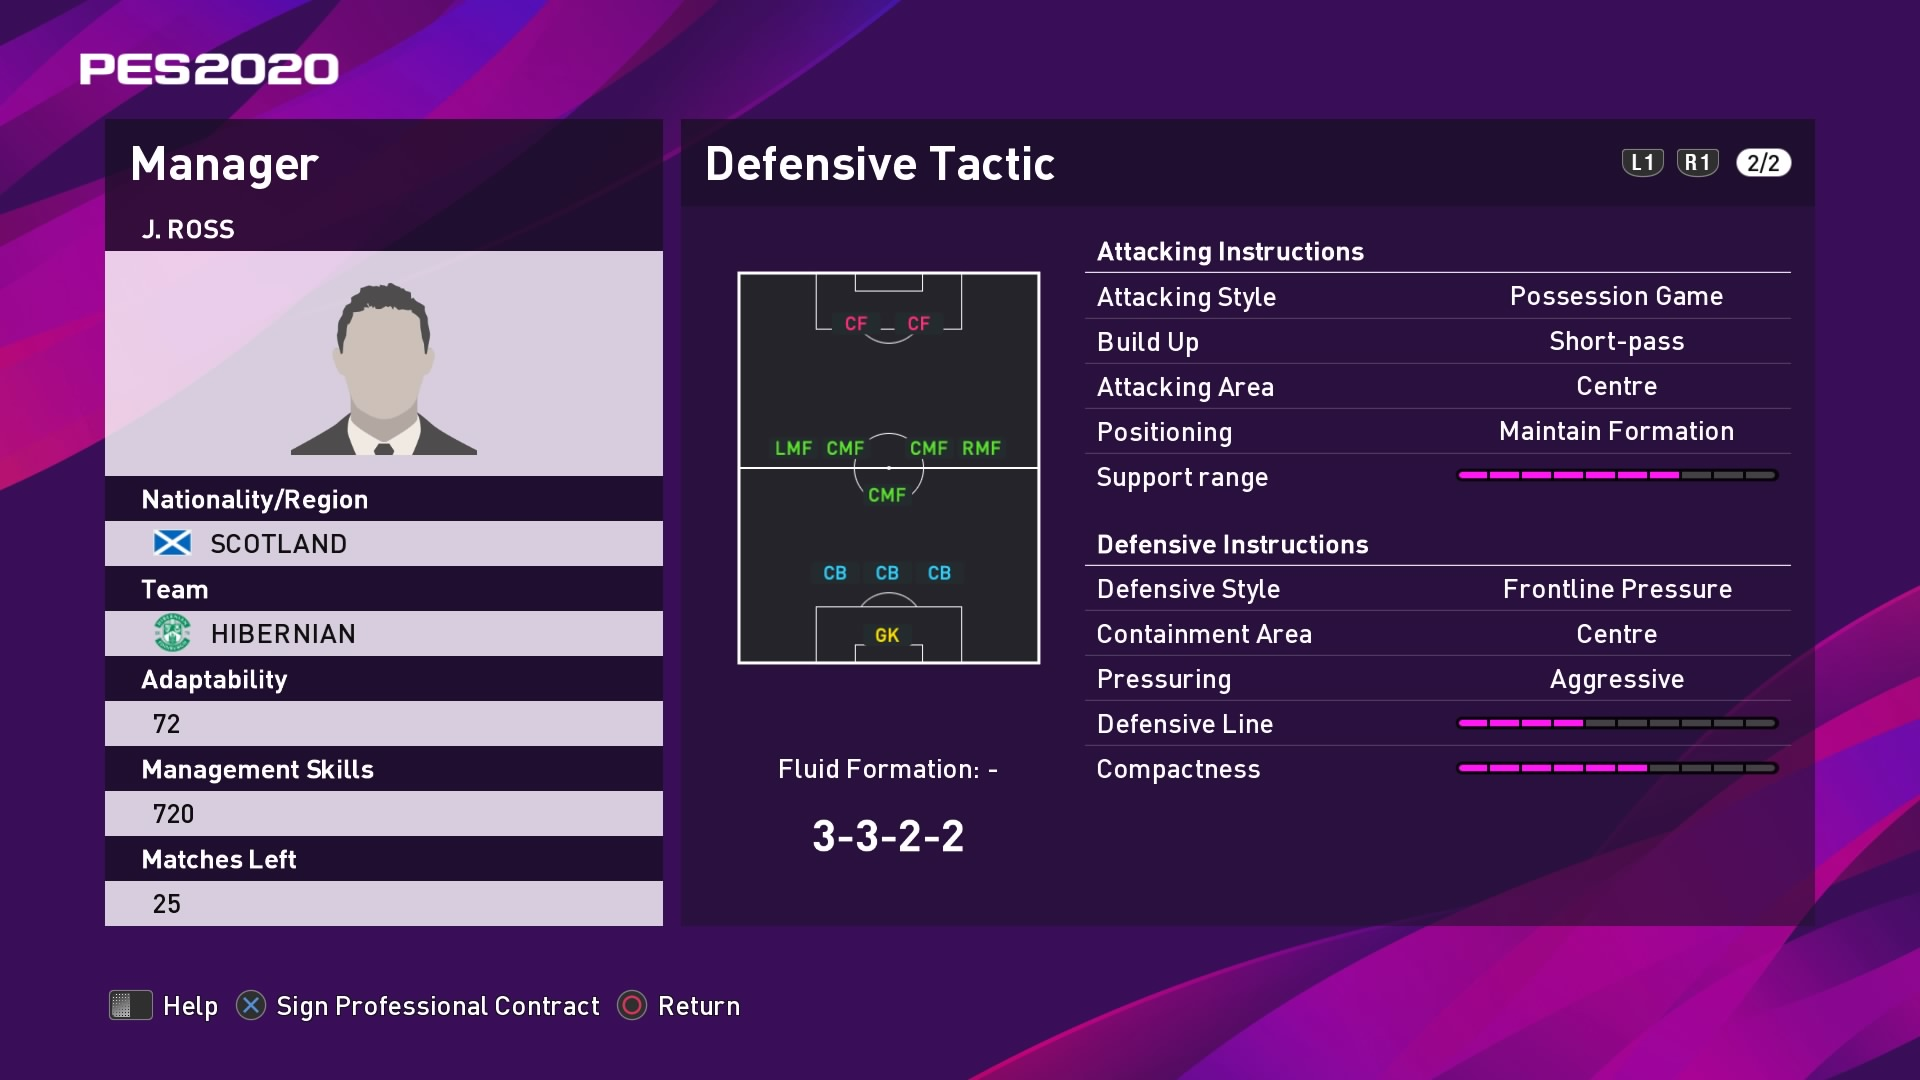 J. Ross (Jack Ross) Defensive Tactic in PES 2020 myClub